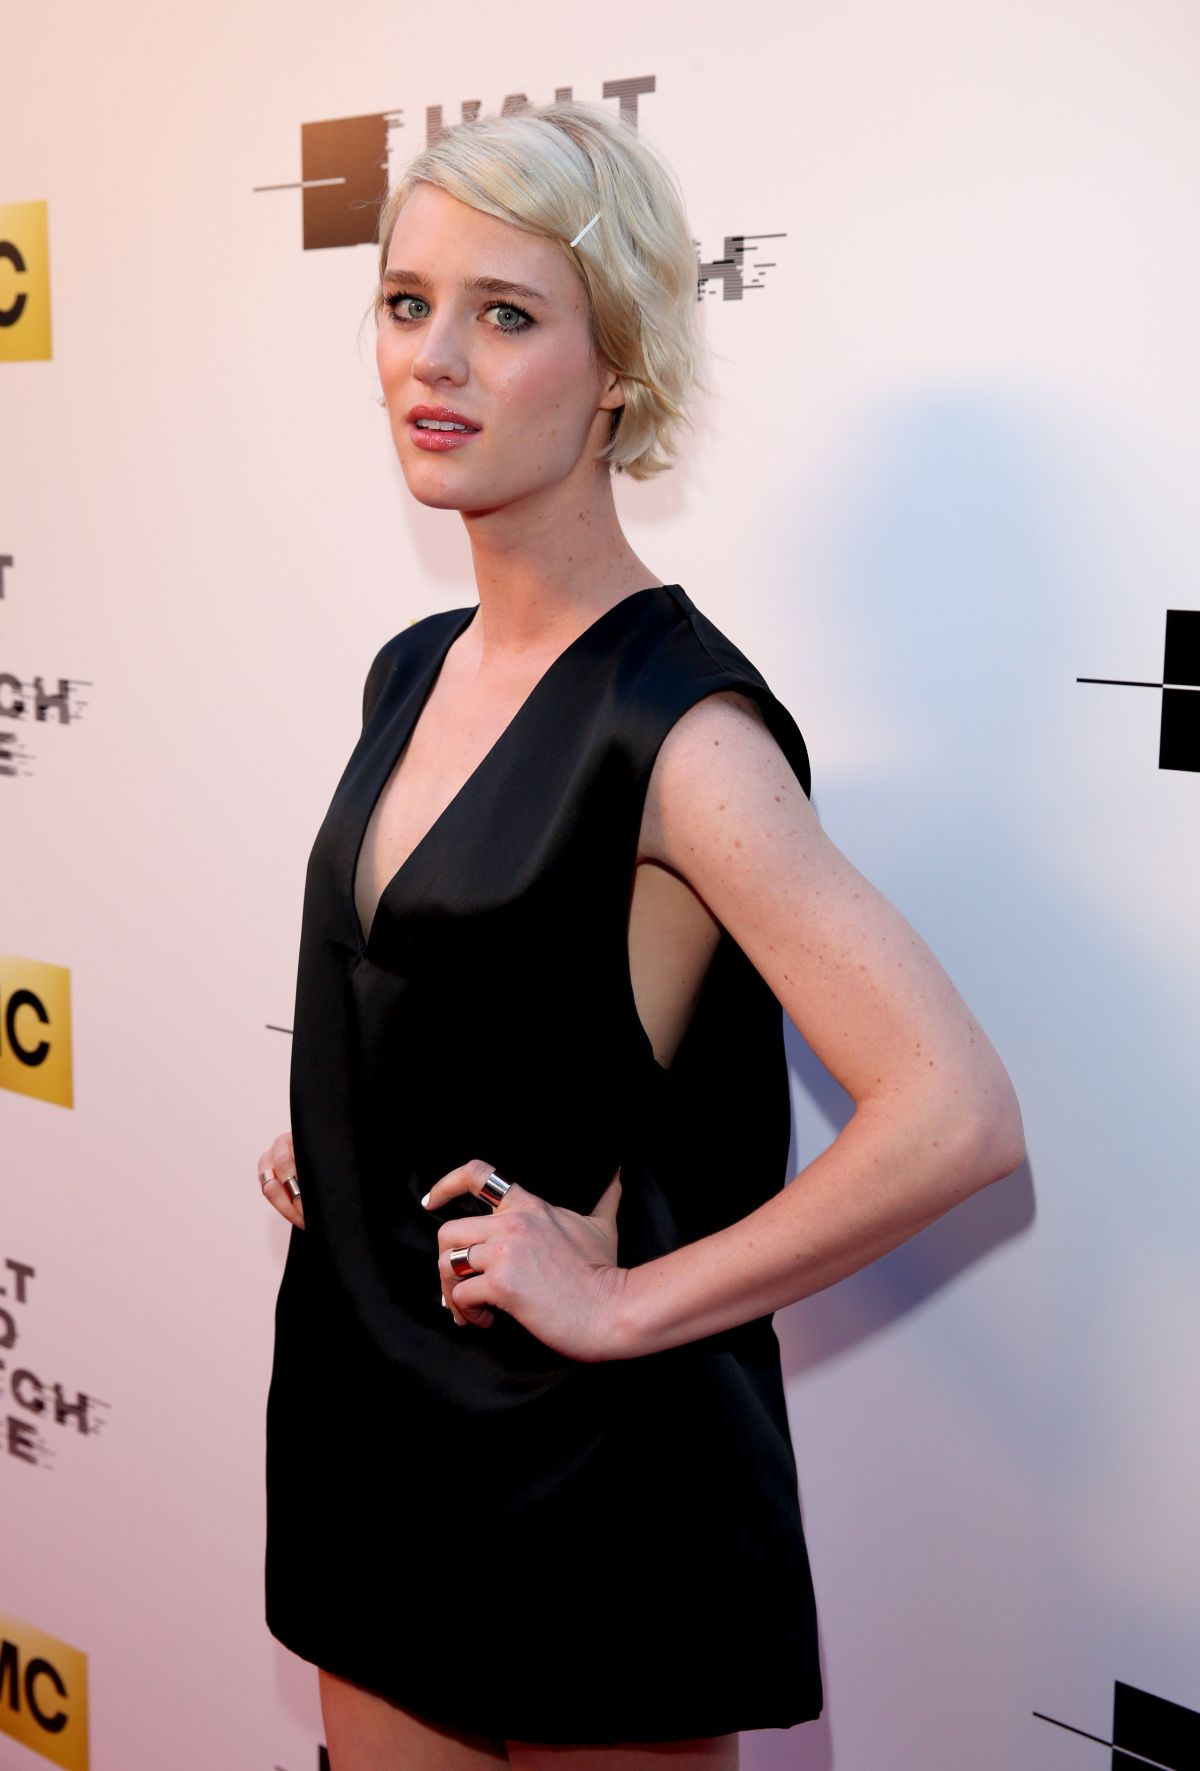 MACKENZIE DAVIS at Halt and Catch Fire Premiere in Hollywood – HawtCelebs